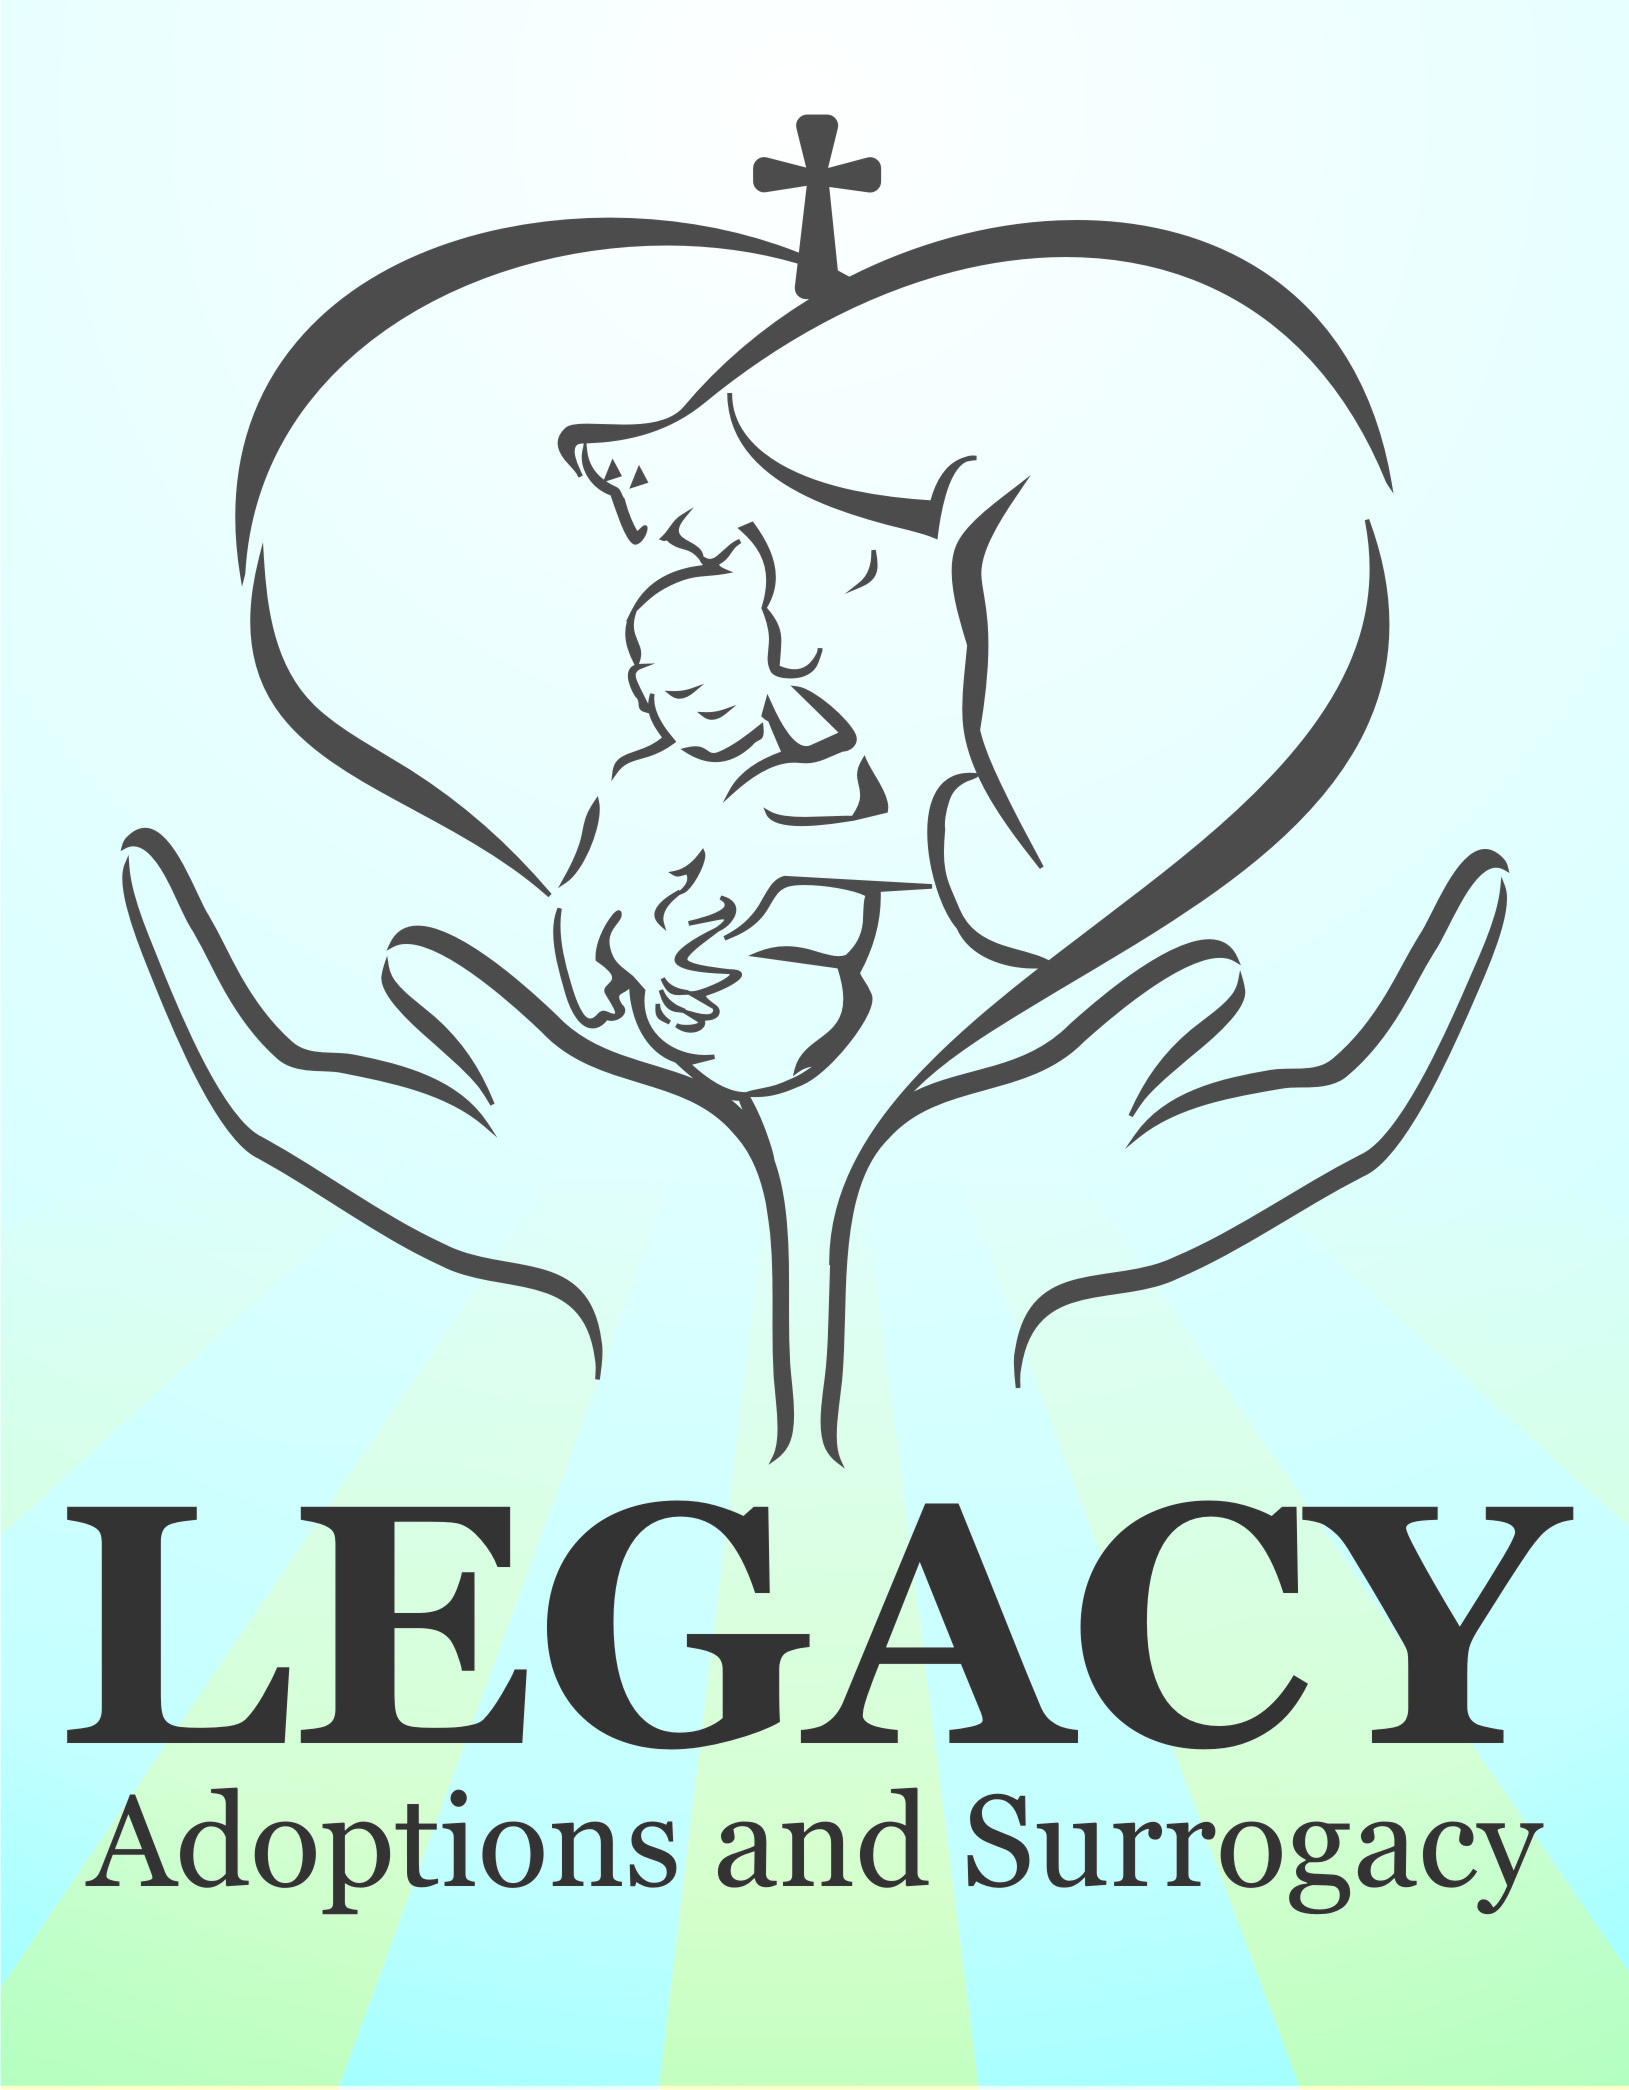 Logo Design by Private User - Entry No. 46 in the Logo Design Contest Legacy Adoptions and Surrogacy Logo Design.